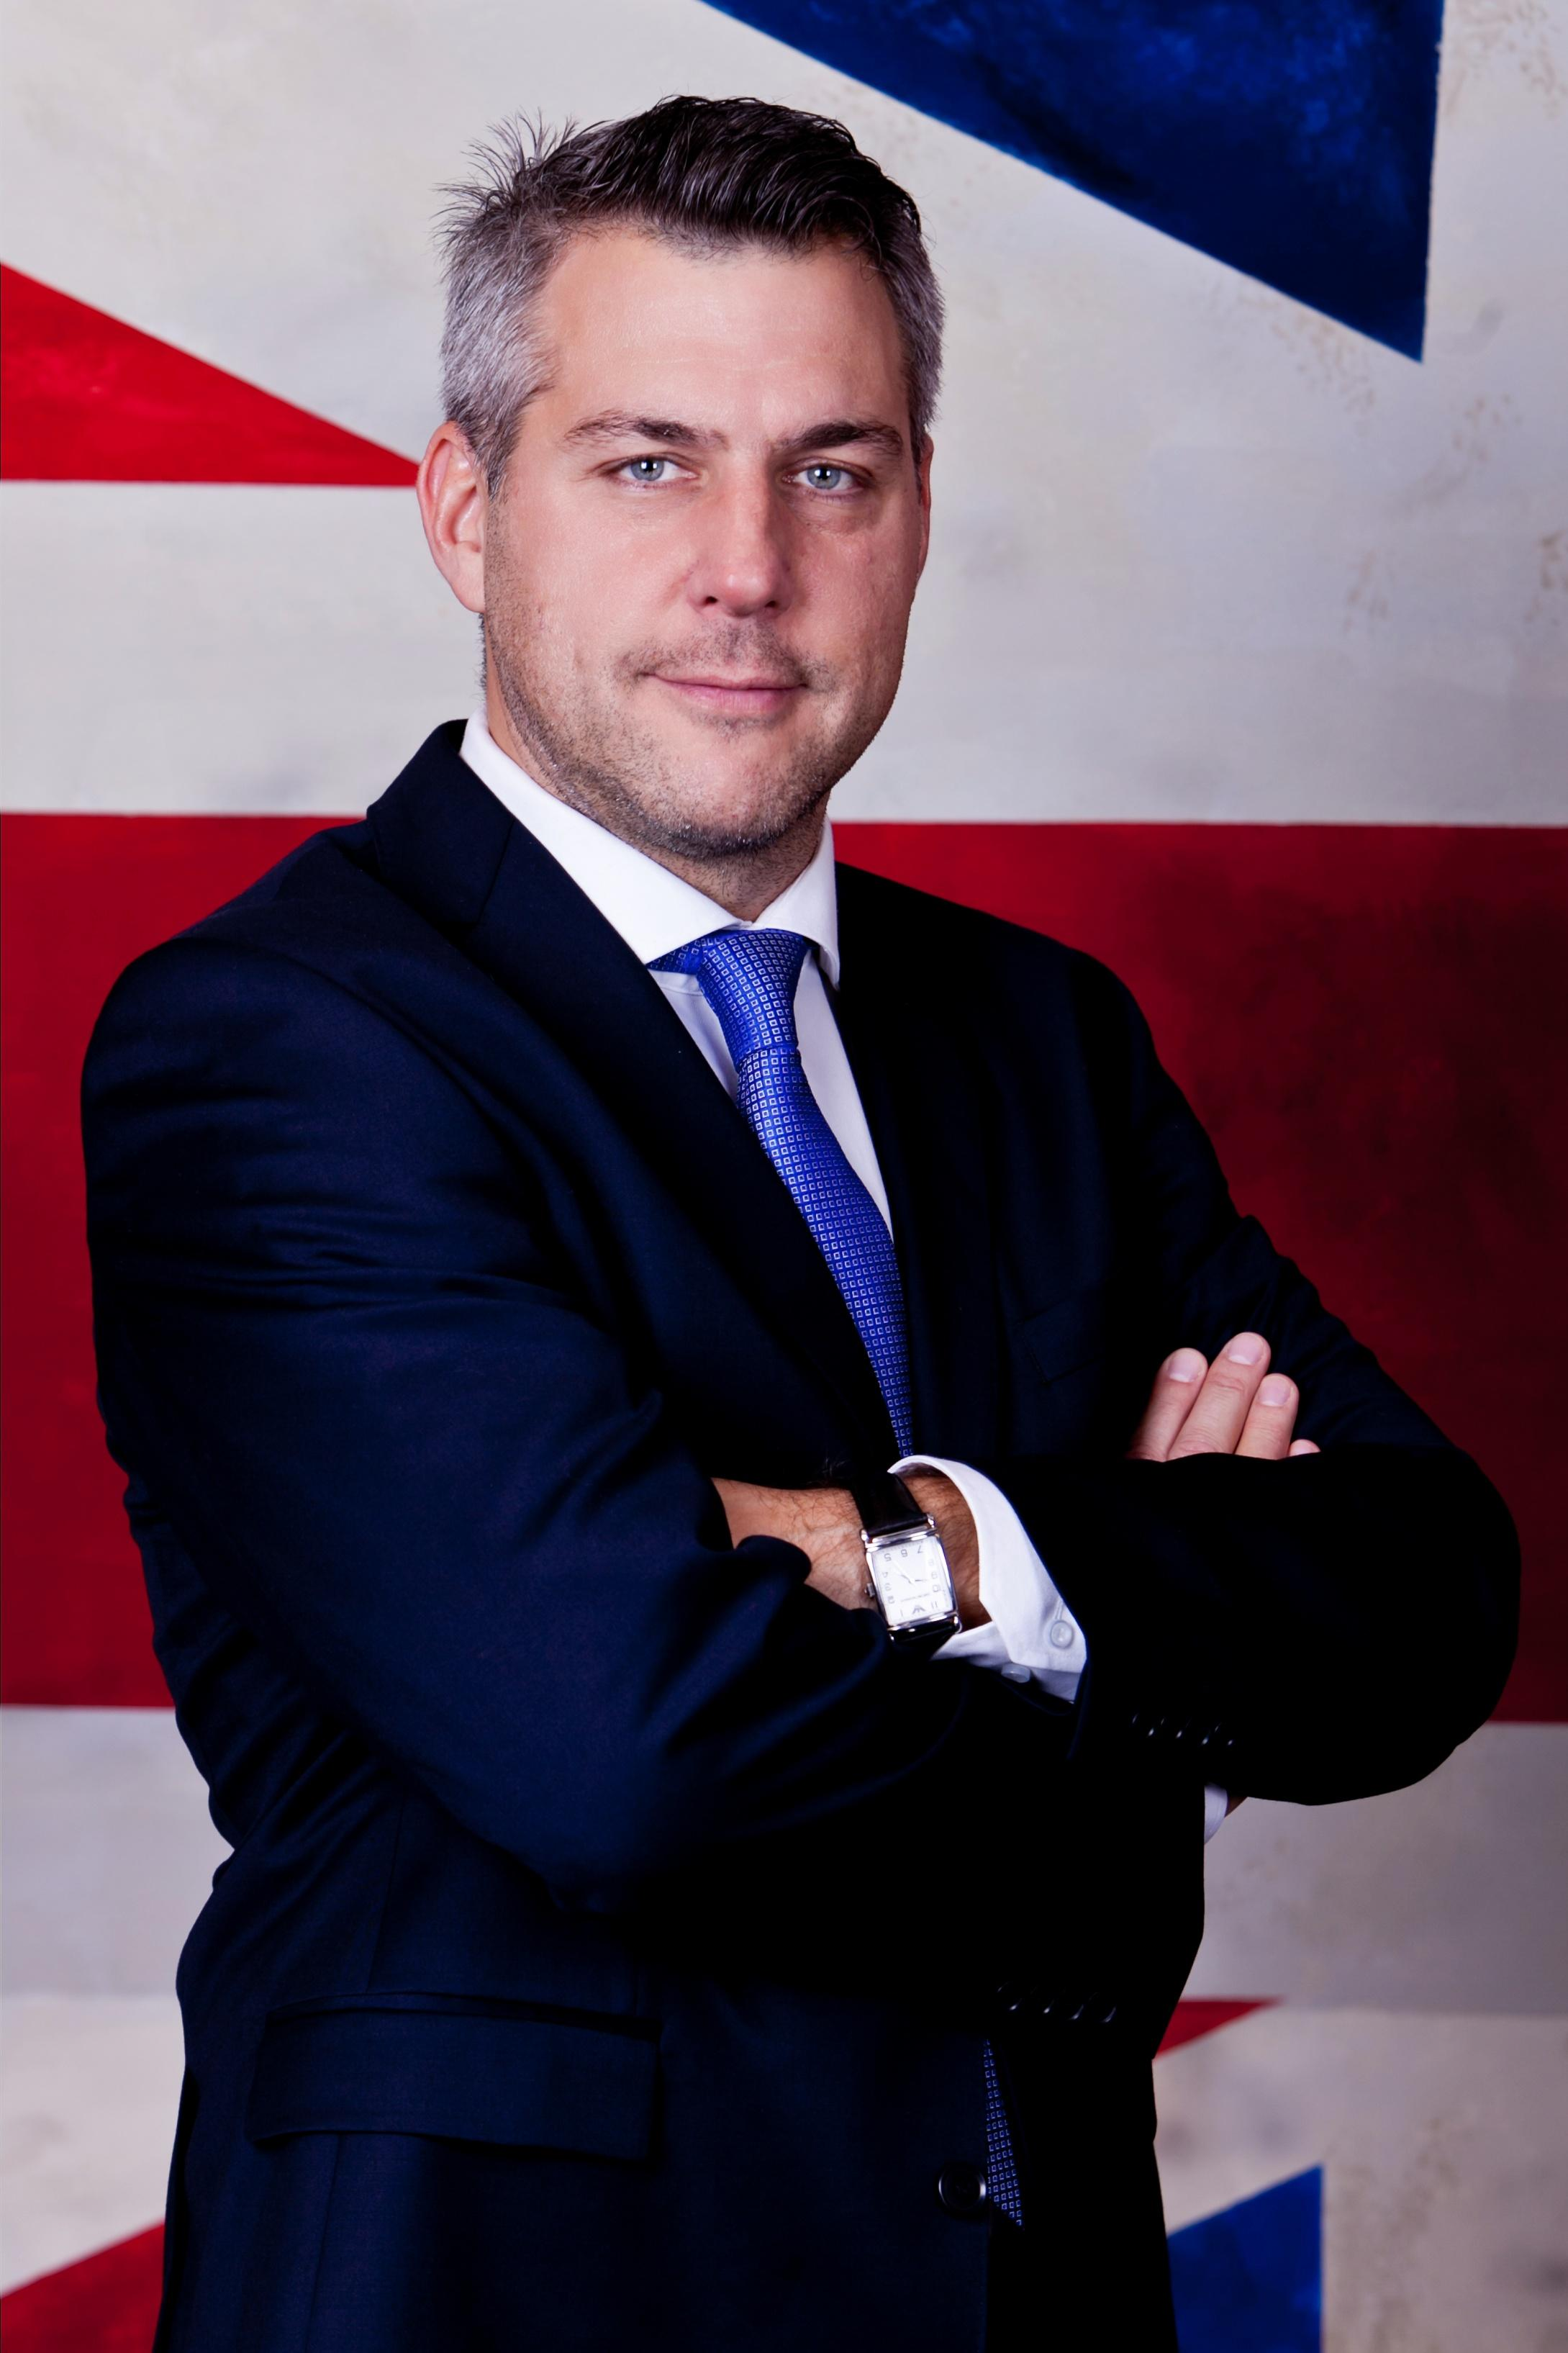 Olivér Strommer, Head of British Business Center